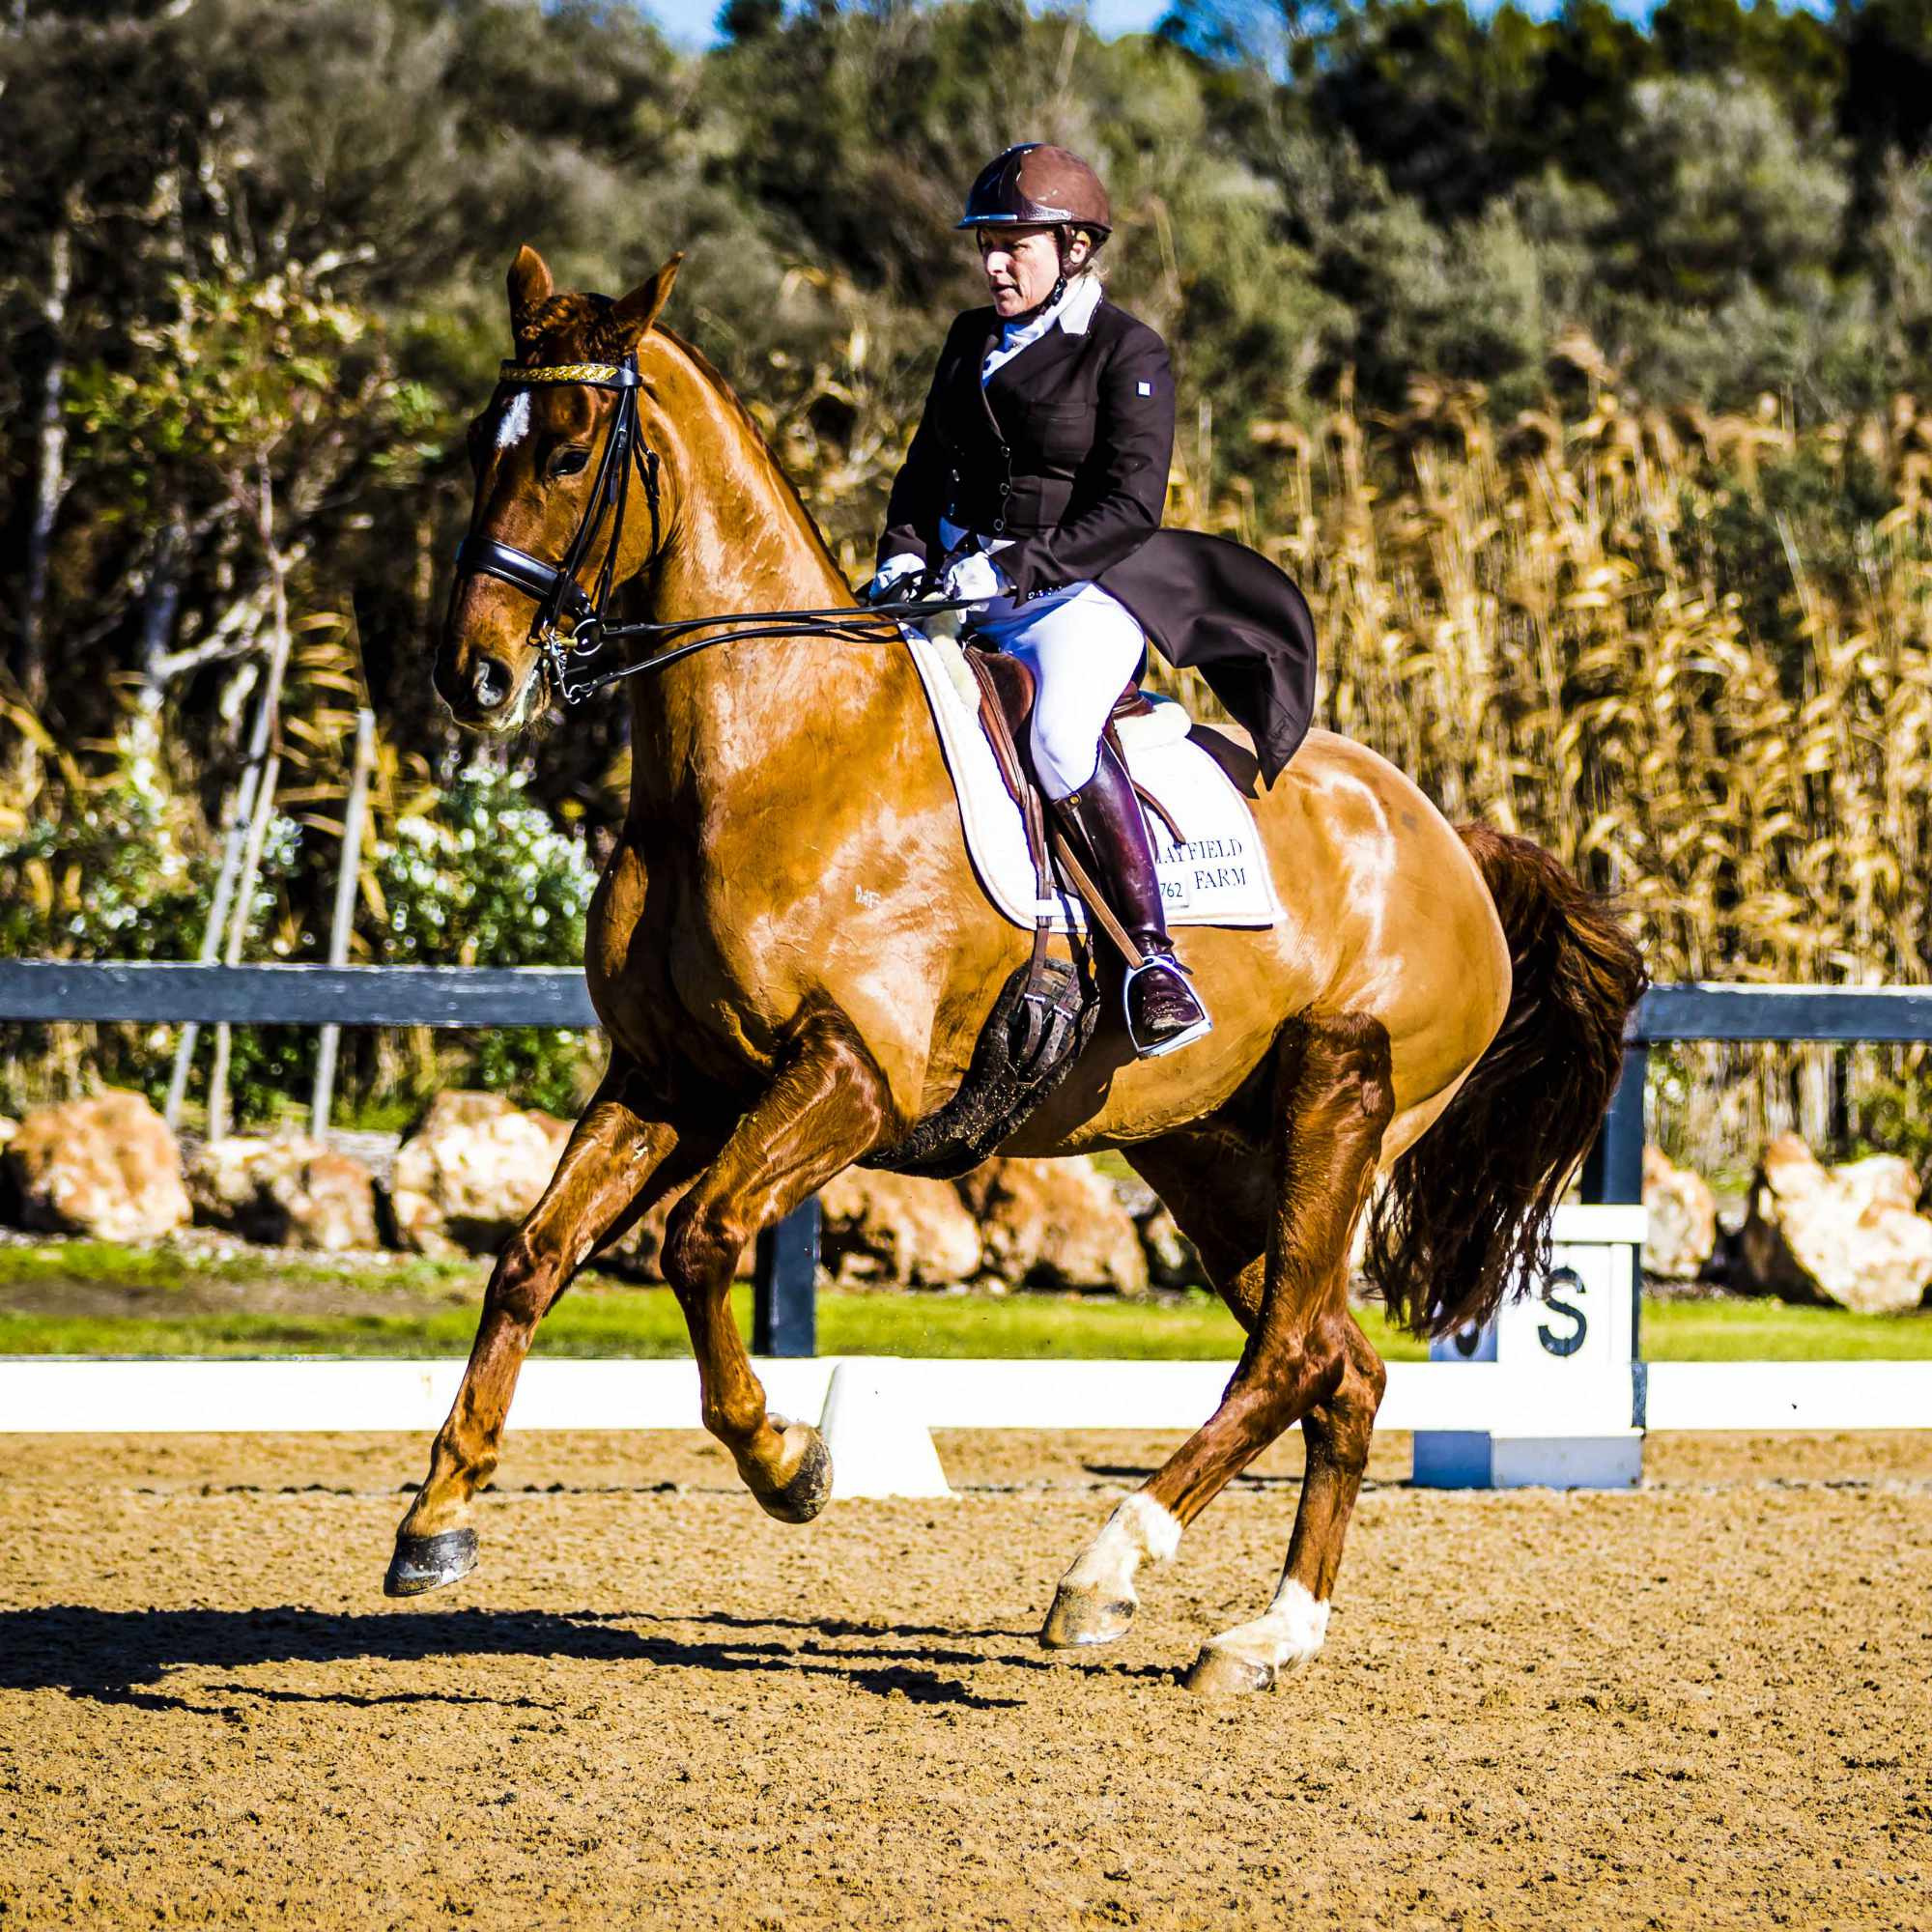 How is Rose-Hip Vital helping Kerry Mack and her horses?